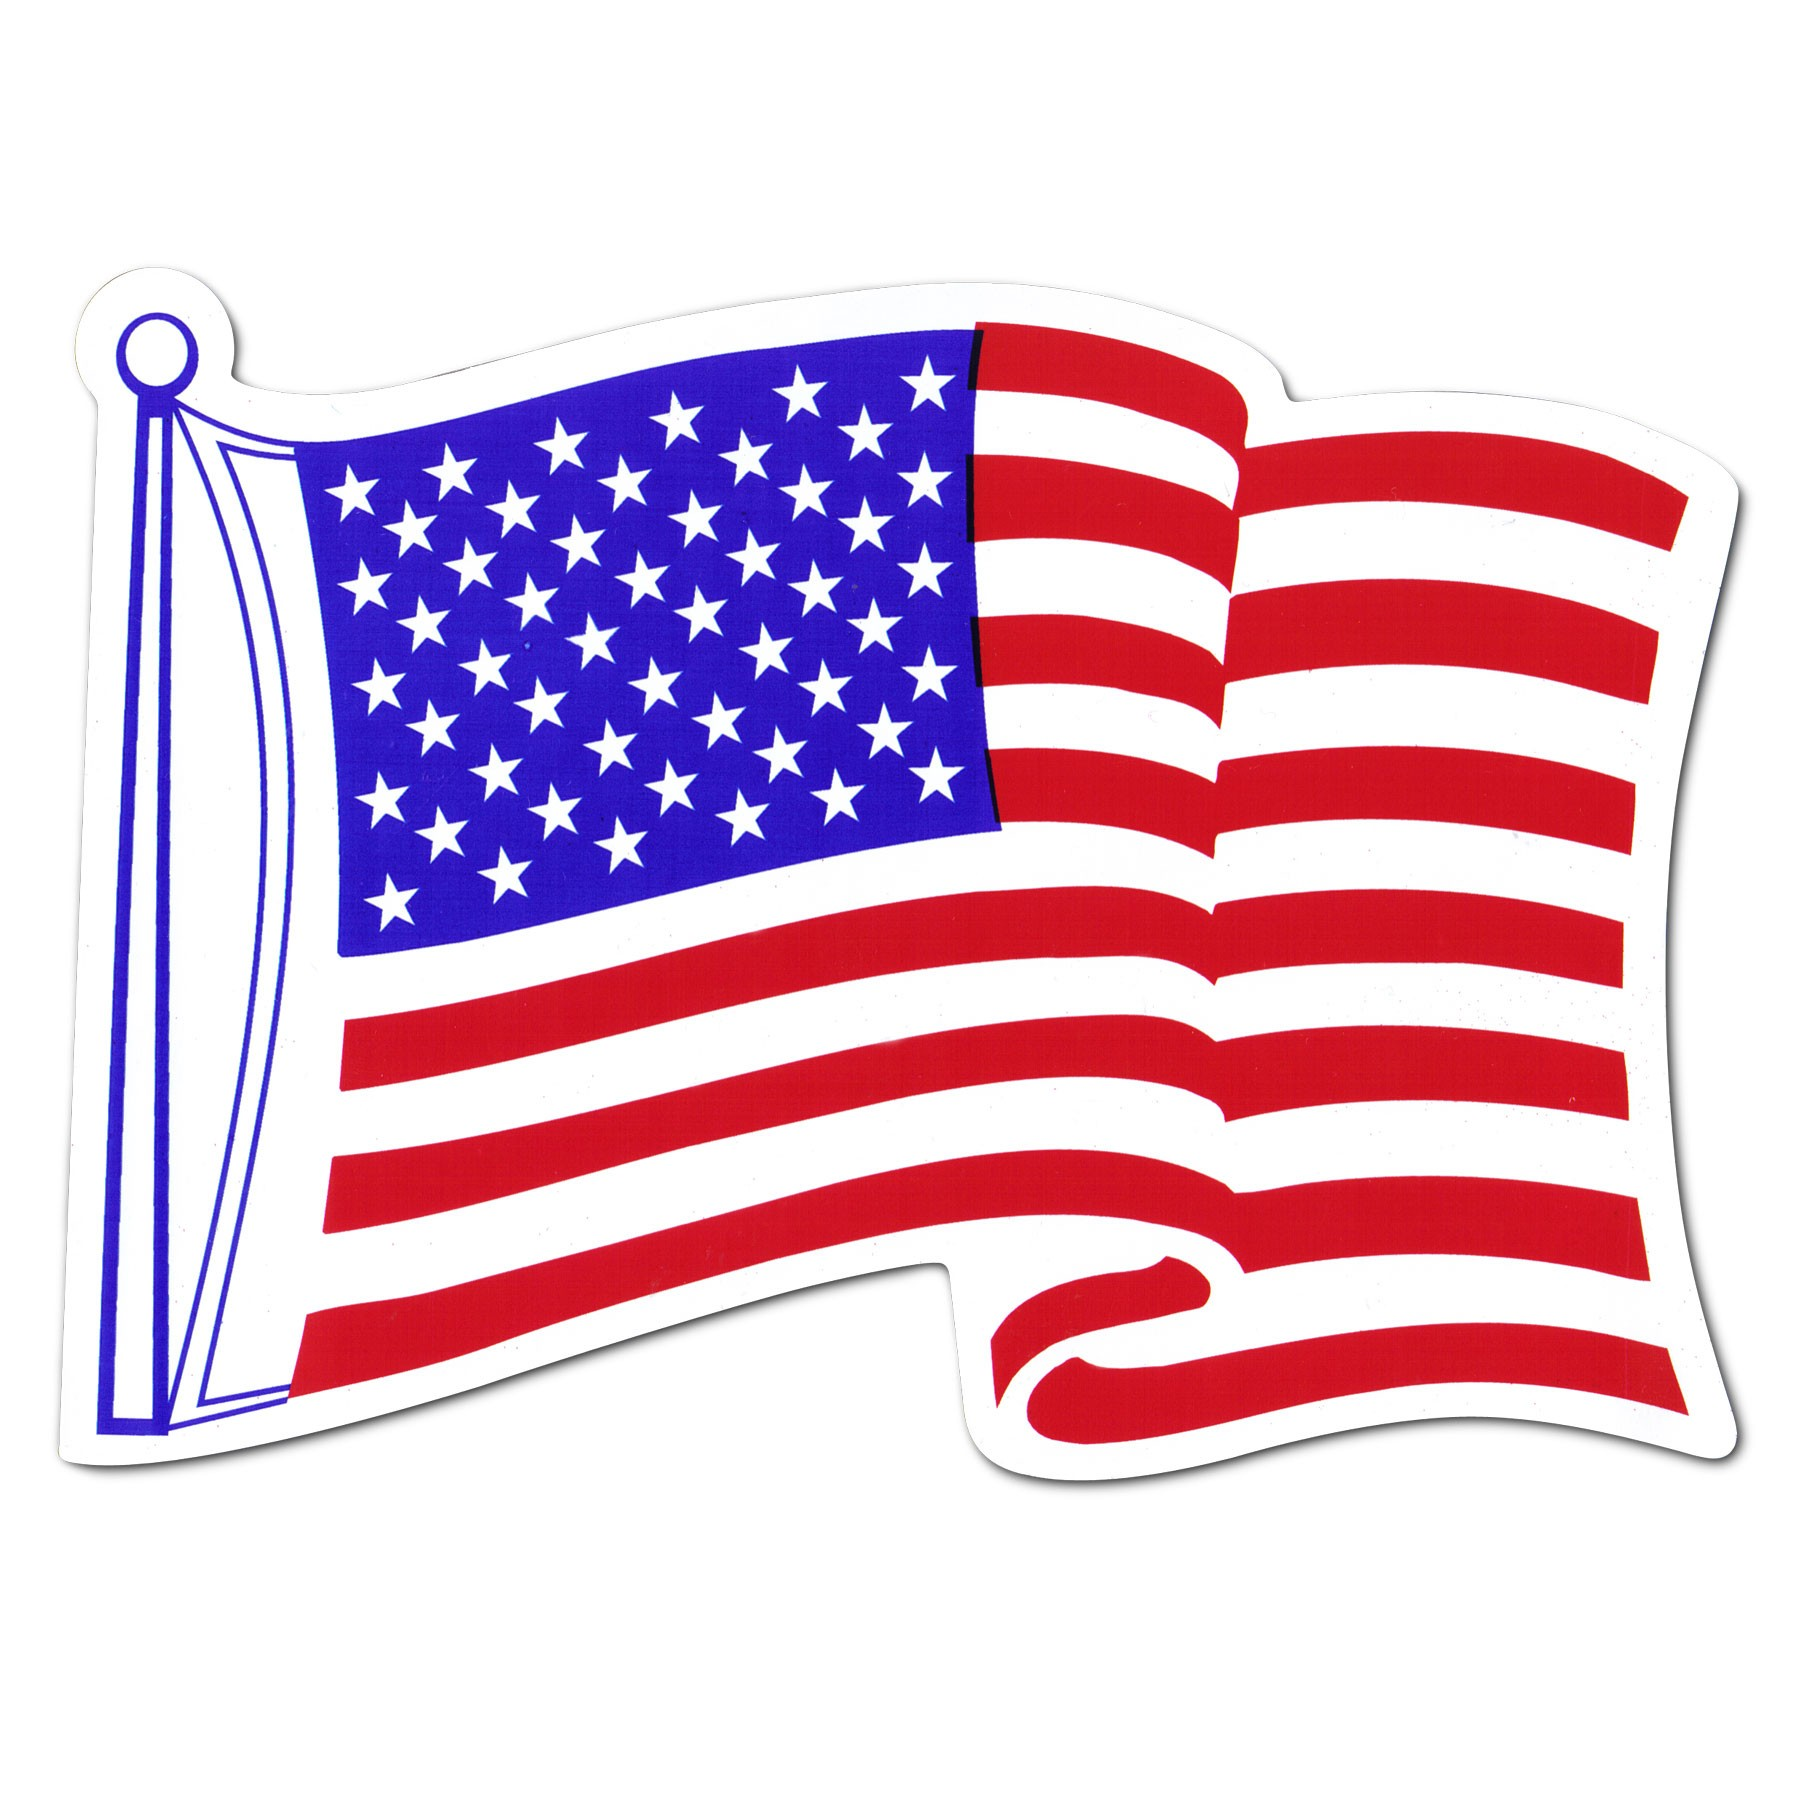 1800x1800 American Flag Clipart Free collection Download and share